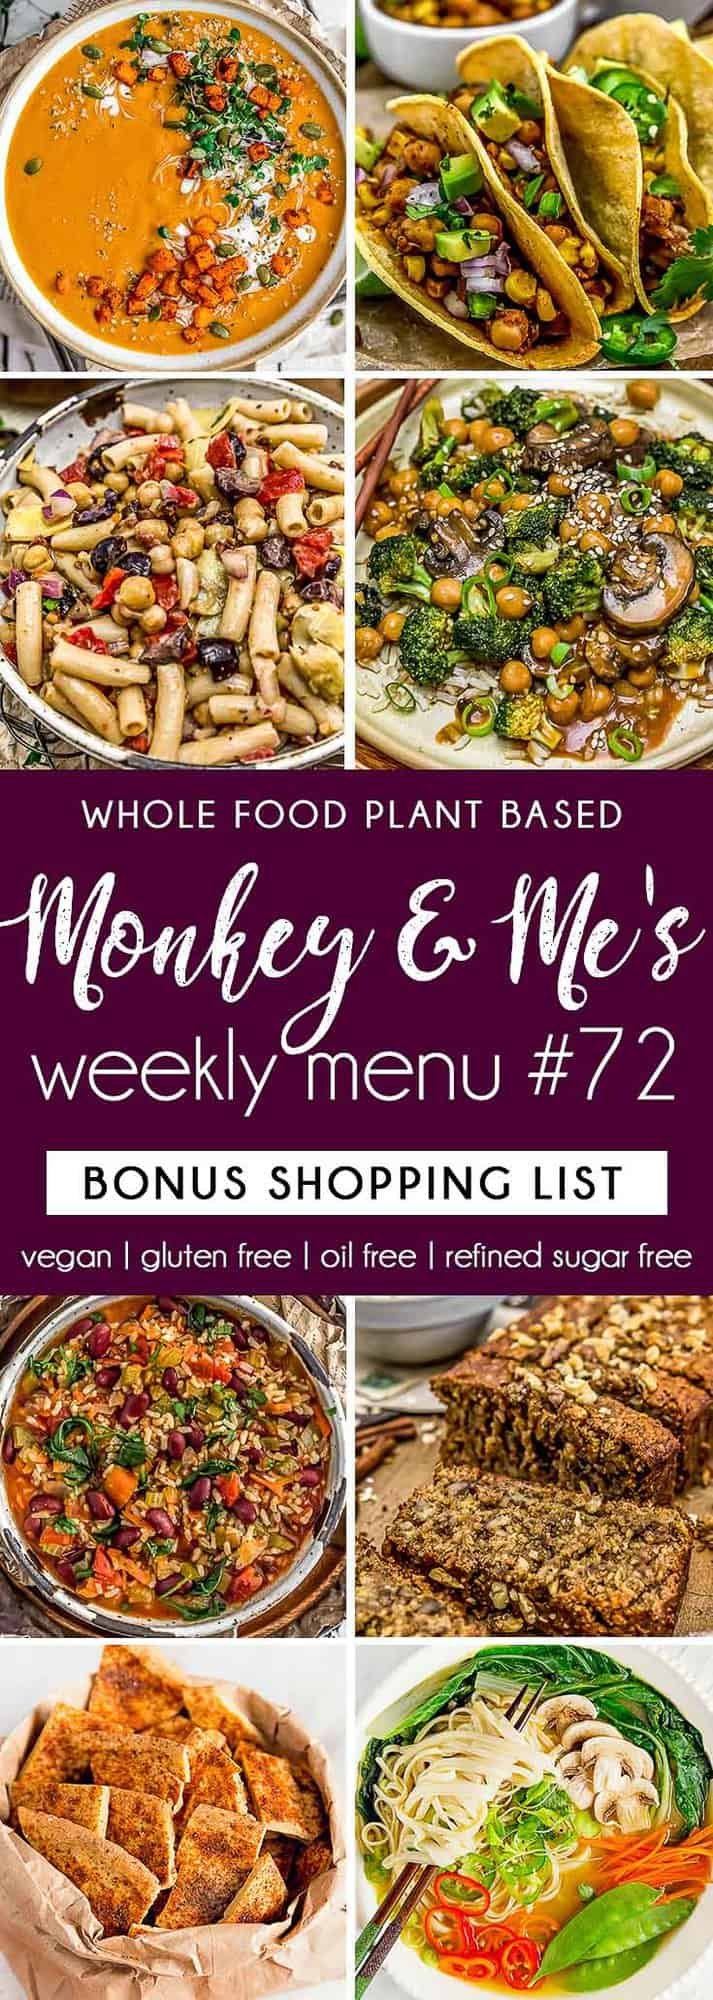 Monkey and Me's Menu 72 featuring 8 recipes